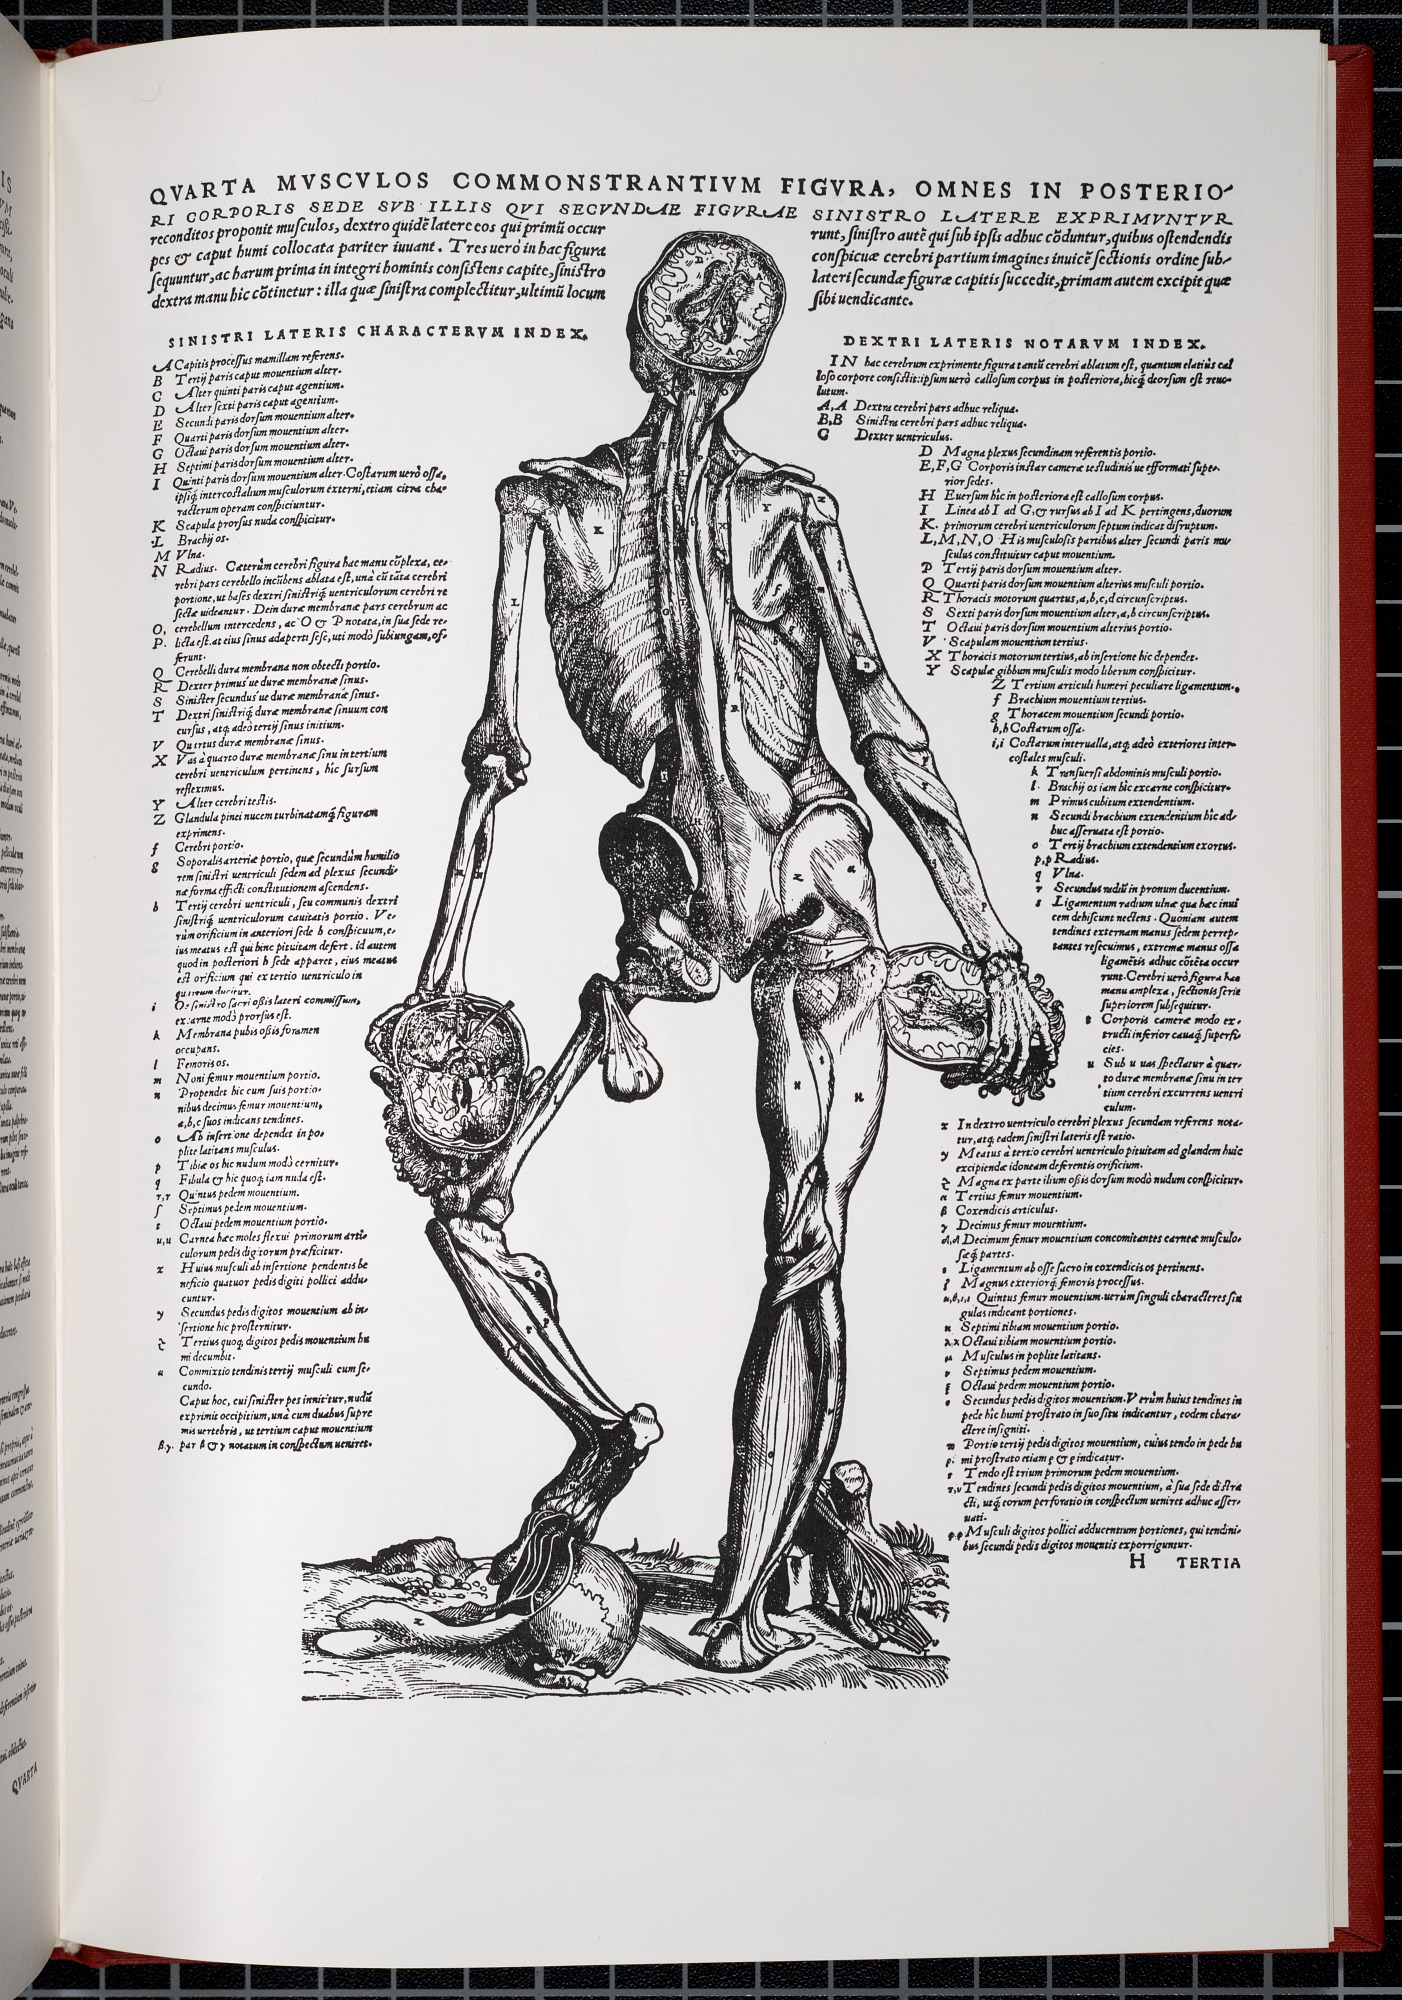 Anatomical Illustration From The Epitome Of Andreas Vesalius